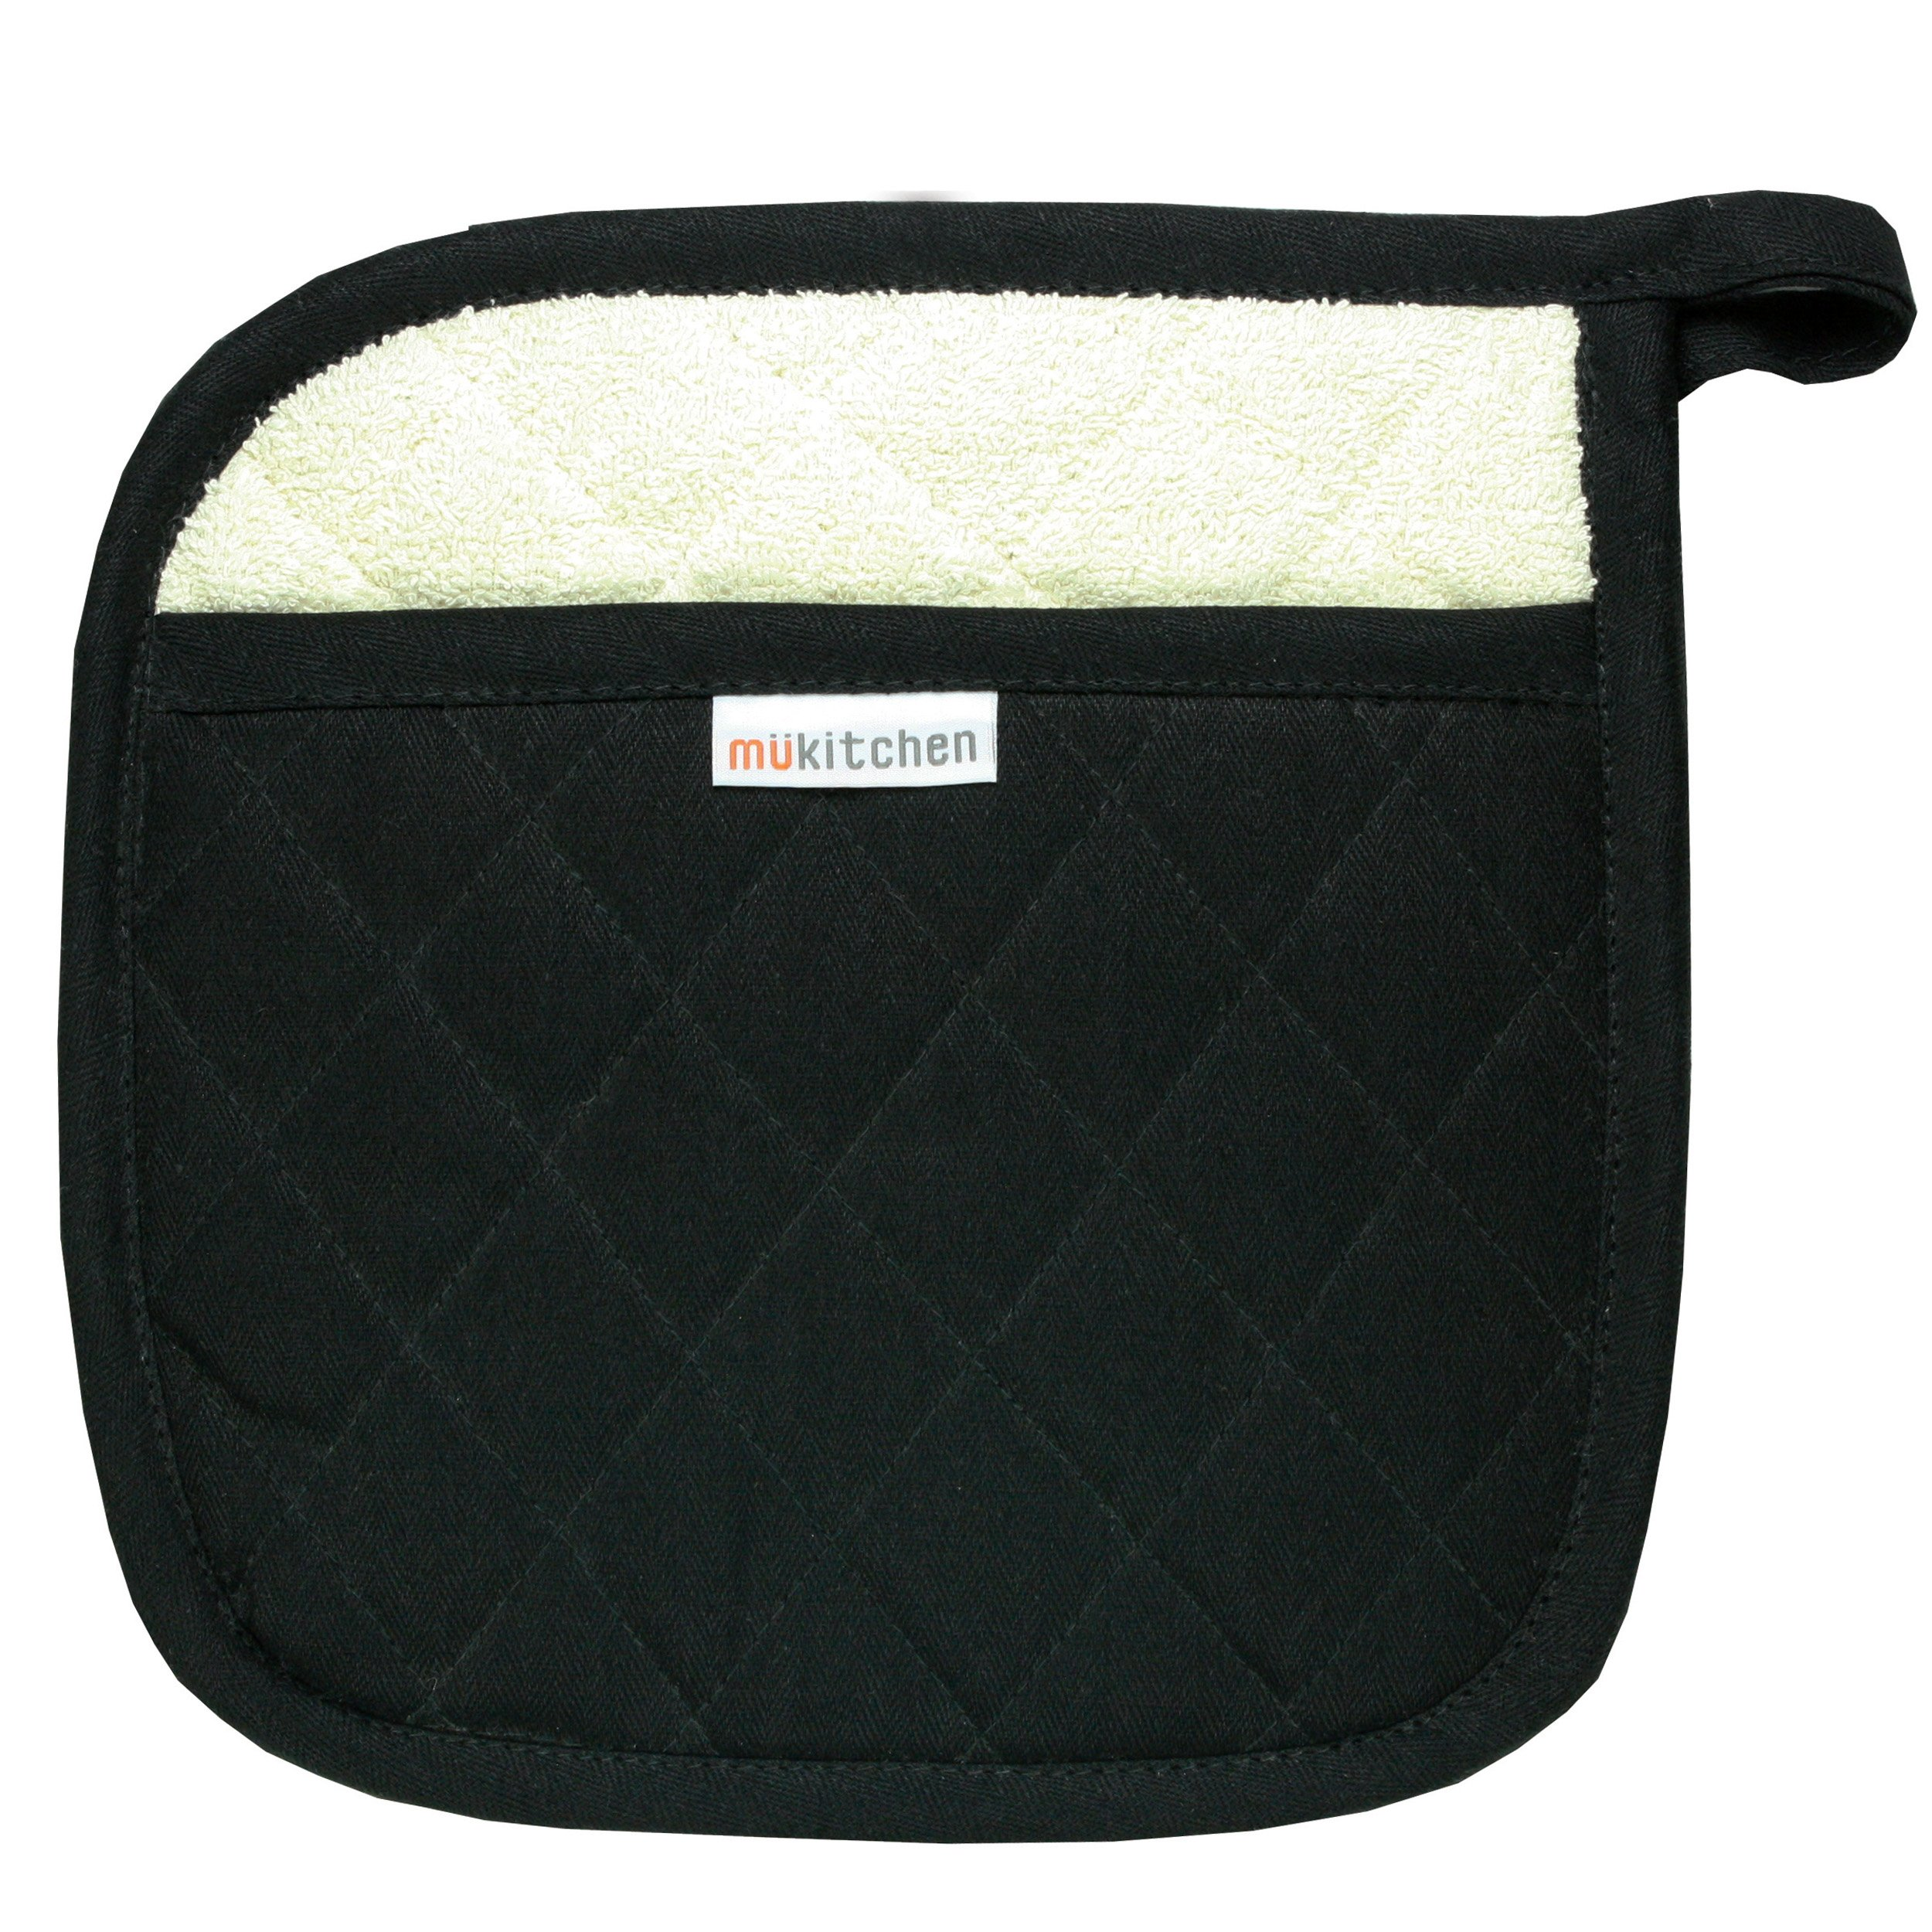 MUkitchen 100% Quilted Cotton Pot Holder, Onyx - Set of 2